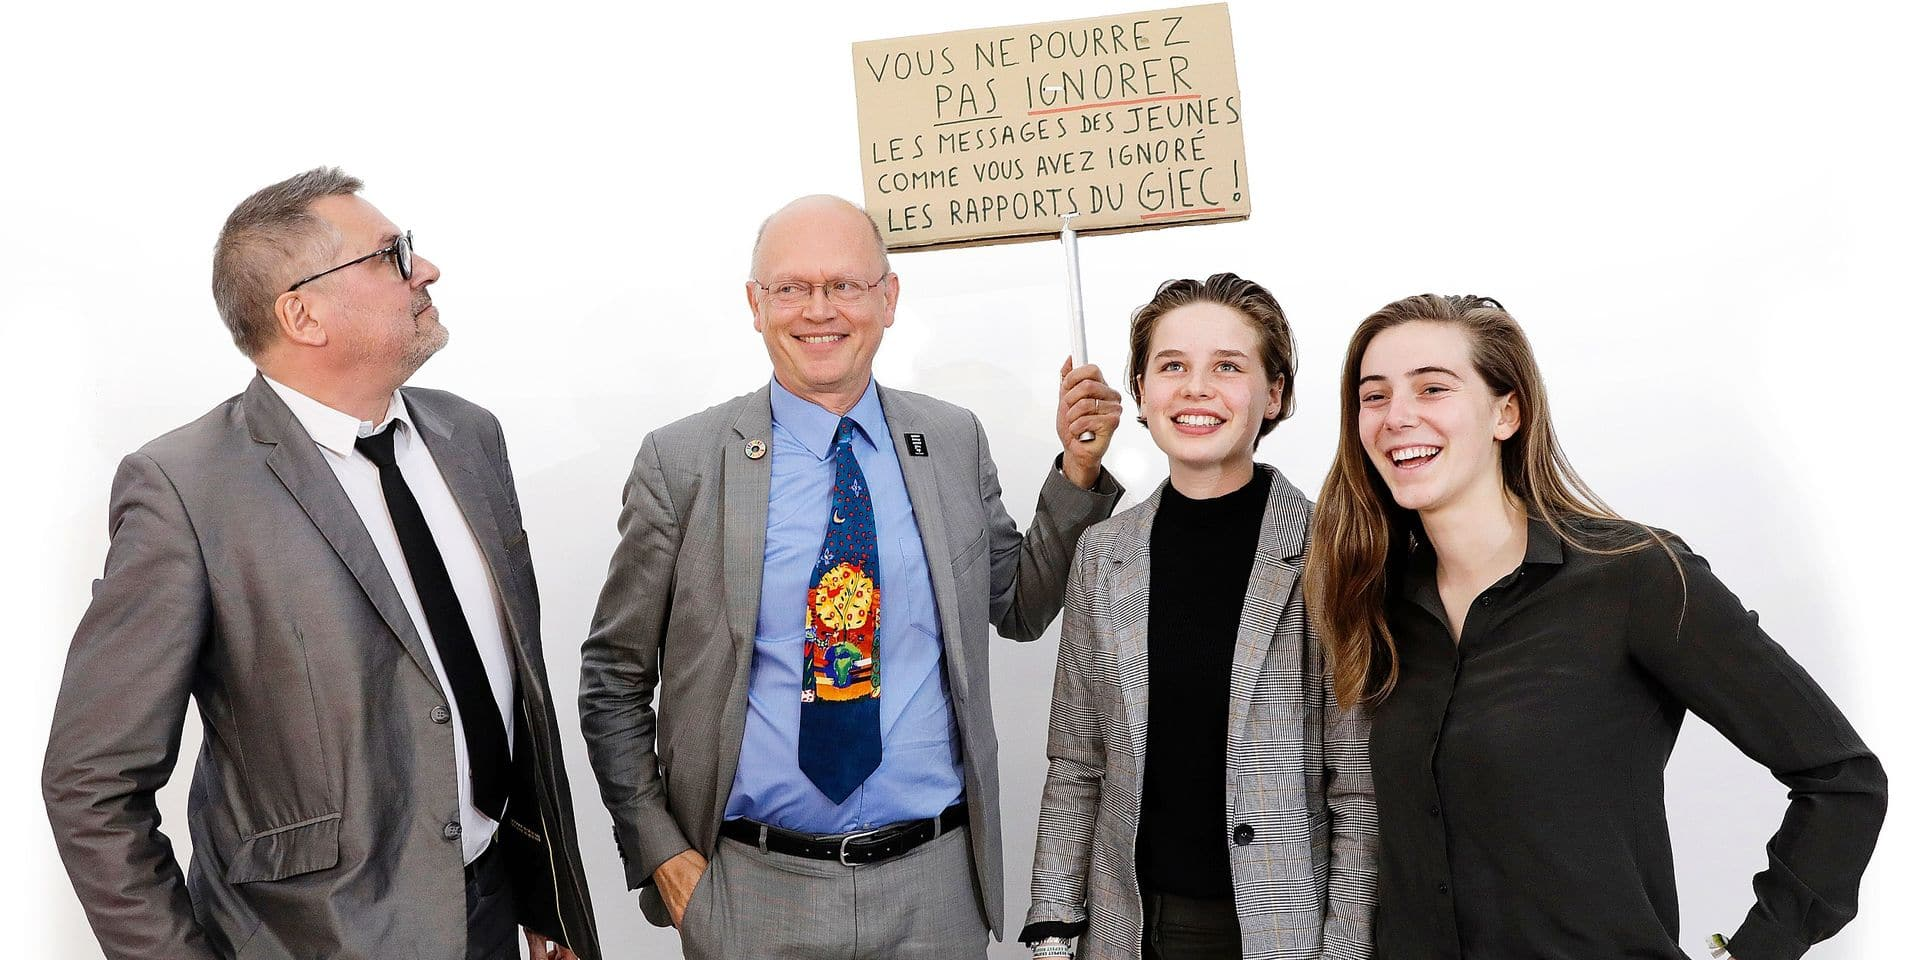 Leo Van Broeck, Belgian academic climatologist Jean-Pascal van Ypersele, Climate activist Anuna De Wever and Climate activists Adelaide Charlier pictured during a press conference to present the report by the 'Panel for the Climate', on demand of 'Youth for Climate', in Brussels, Tuesday 14 May 2019. The organizers of the ongoing student strike action 'Youth For Climate', urging pupils to skip classes to protest a lack of climate awareness, asked a panel of climate scientists to present scientifically backed solutions to end all climate and sustainability discussions. BELGA PHOTO THIERRY ROGE